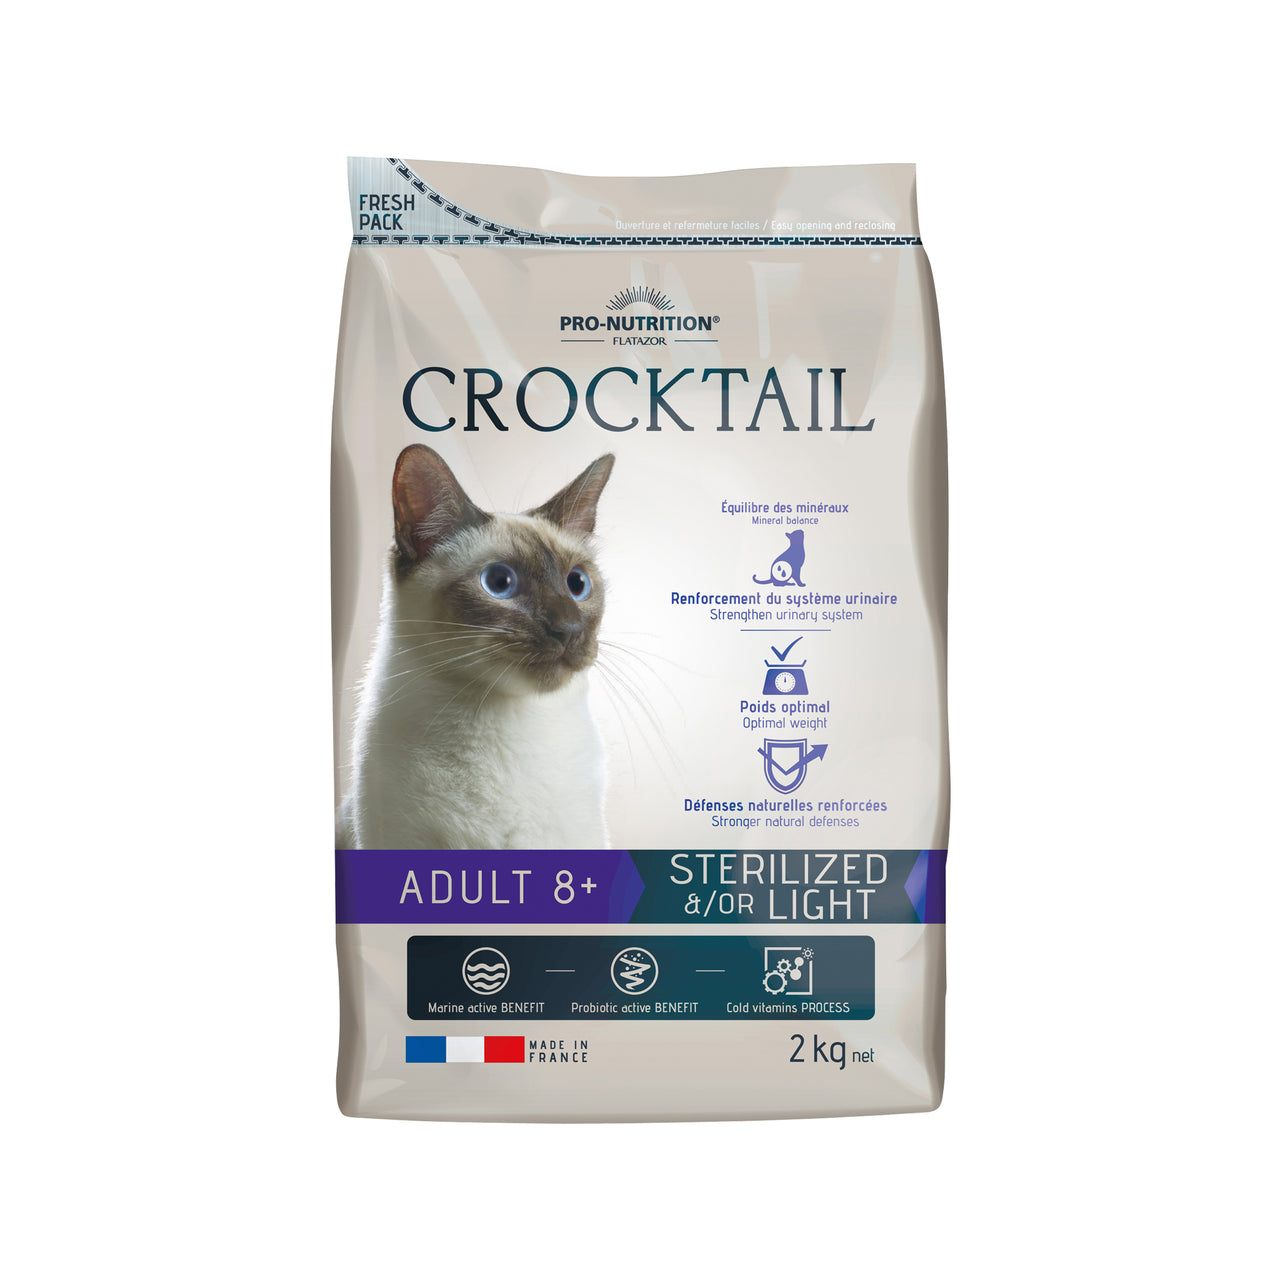 Crocktail Adult 8+ Sterilized / Light 2kg